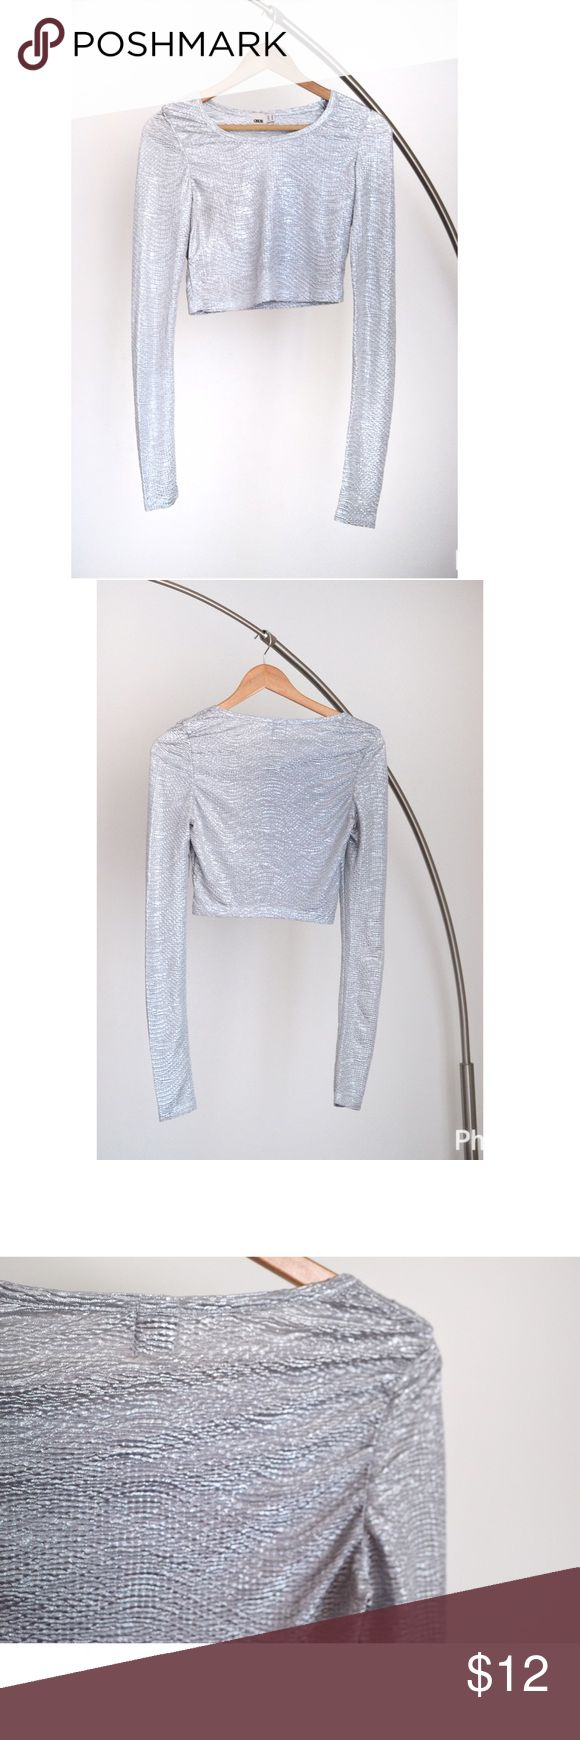 Silver crop top Silver crop top. Textured fabric. Only worn once. Please let me know if you have questions! Thanks!   🤗☺️☺️ ASOS Tops Crop Tops